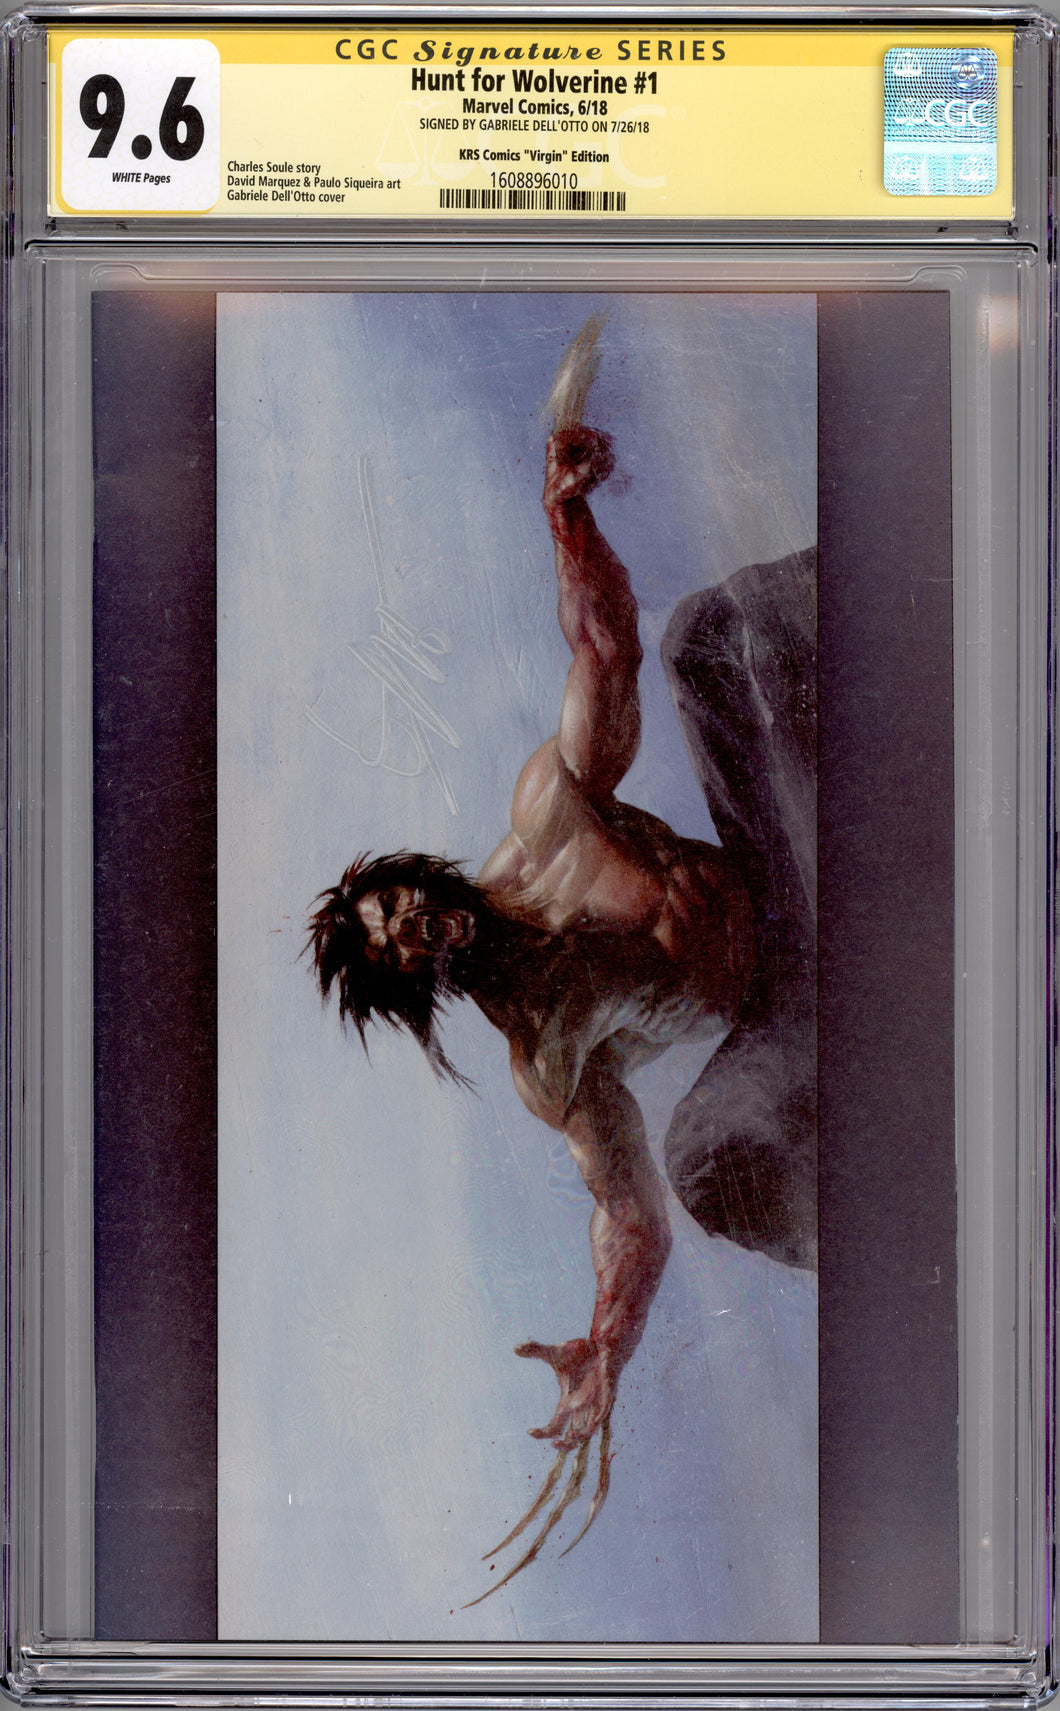 VIRGIN CGC 9.6 SIGNATURE SERIES EDITION Hunt for Wolverine #1 Gabriele Dell'Otto Scott's Collectables Variant Cover